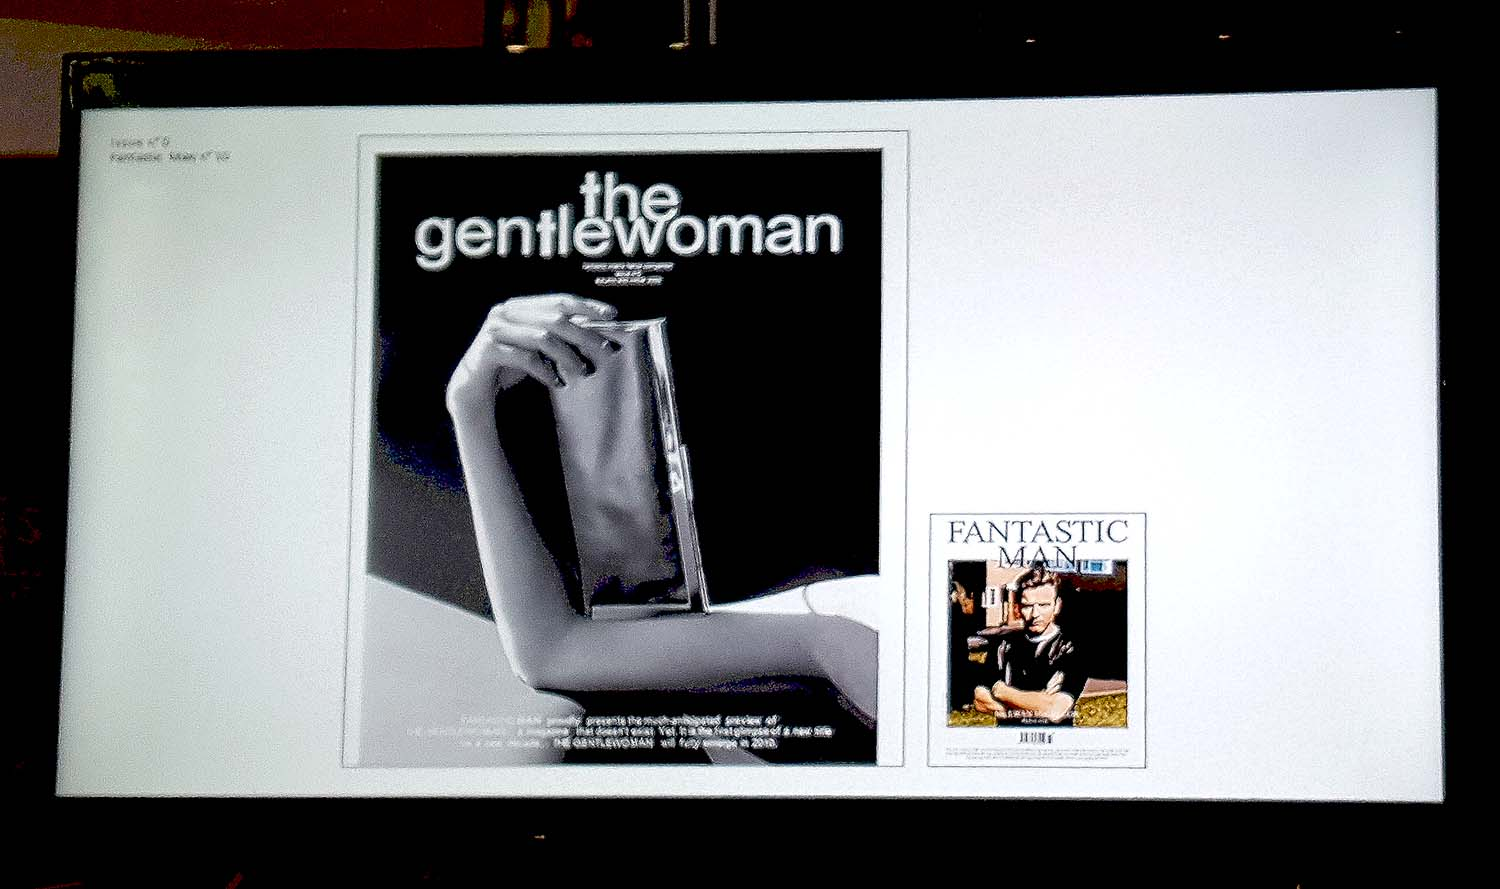 The Gentlewoman Magazine